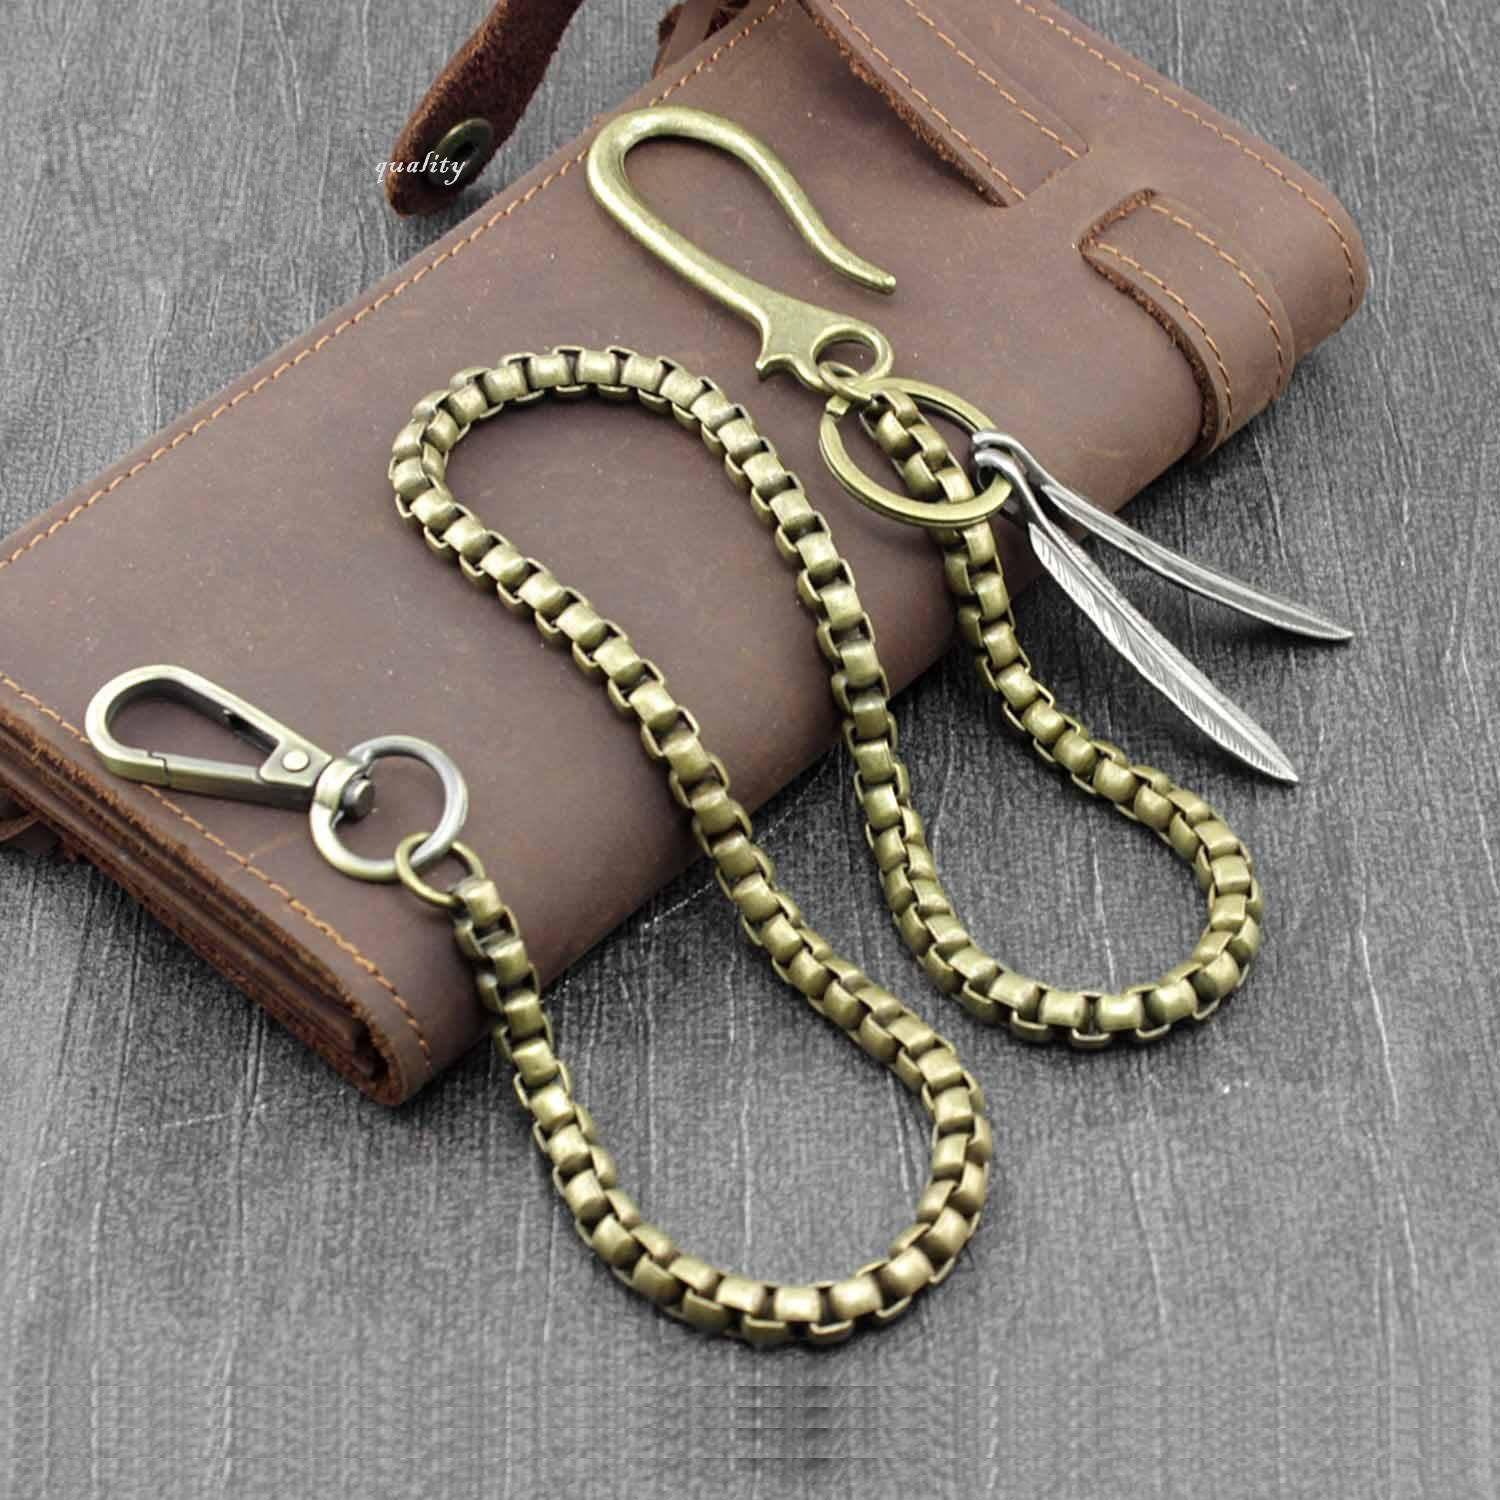 Solid Brass Hook Wallet Chain Cool Punk Rock Biker Trucker Wallet Chain Trucker Wallet Chain for Men